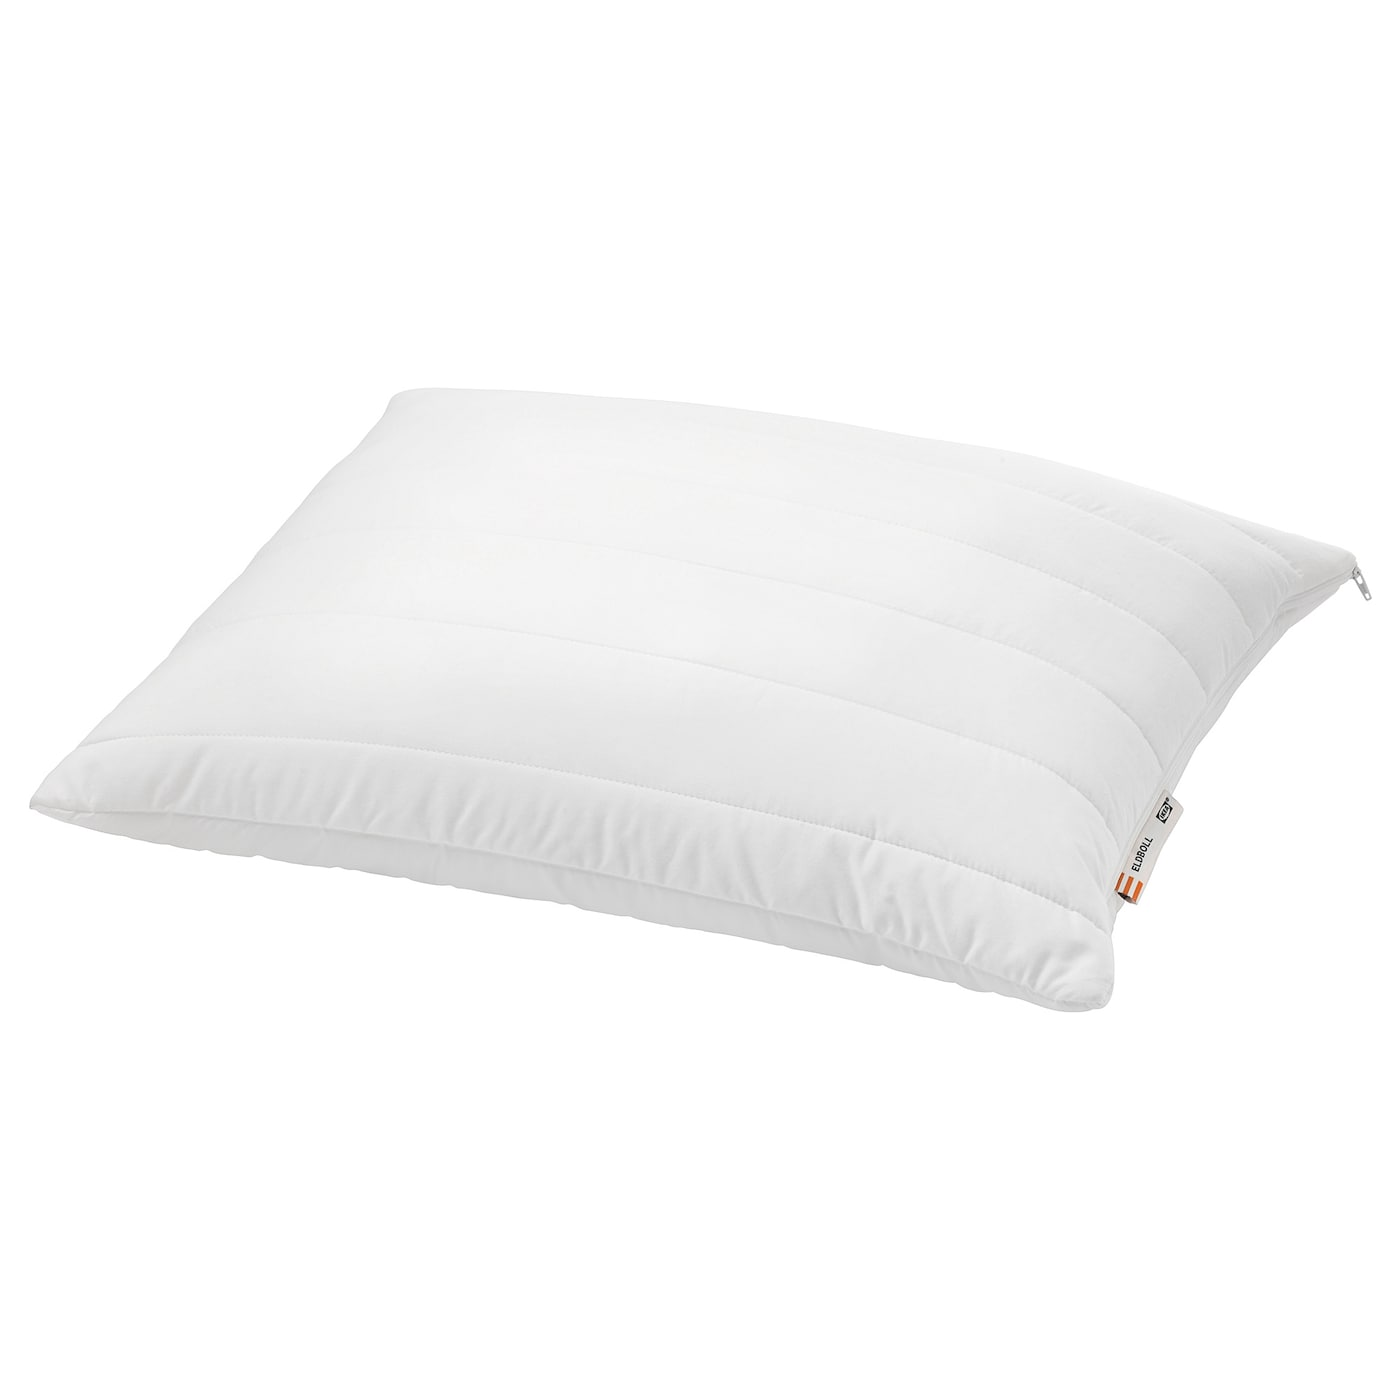 IKEA ELDBOLL memory foam/polyester pillow Choose this pillow if you are a back or side sleeper.